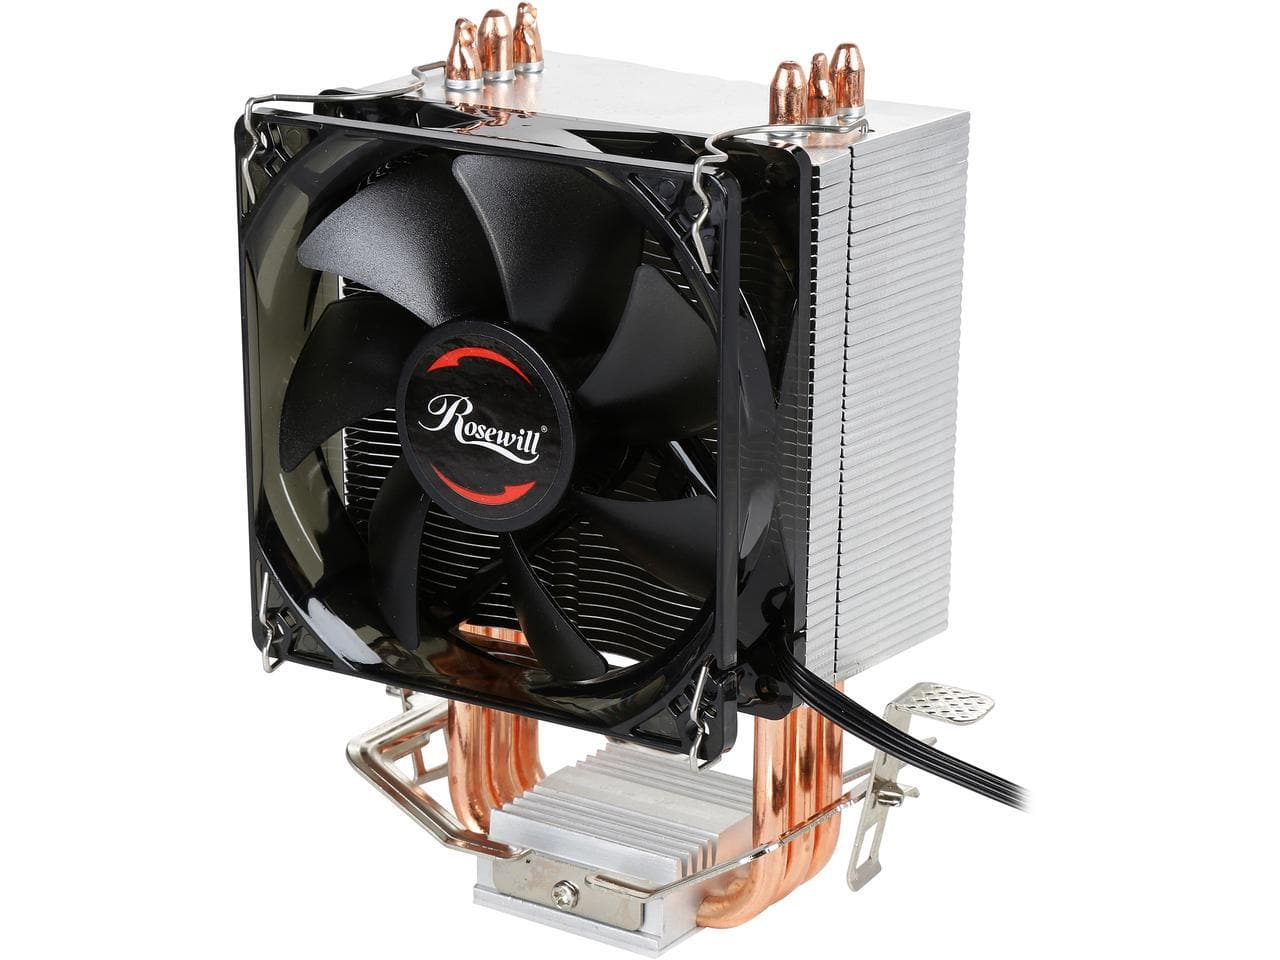 NETIS N150 USB 2.0 Wireless Adapter, Rosewill 92mm CPU Cooler, Rosewill Bluetooth 4.0 USB Adapter & More for Free After Rebate + Free Ship @ Newegg